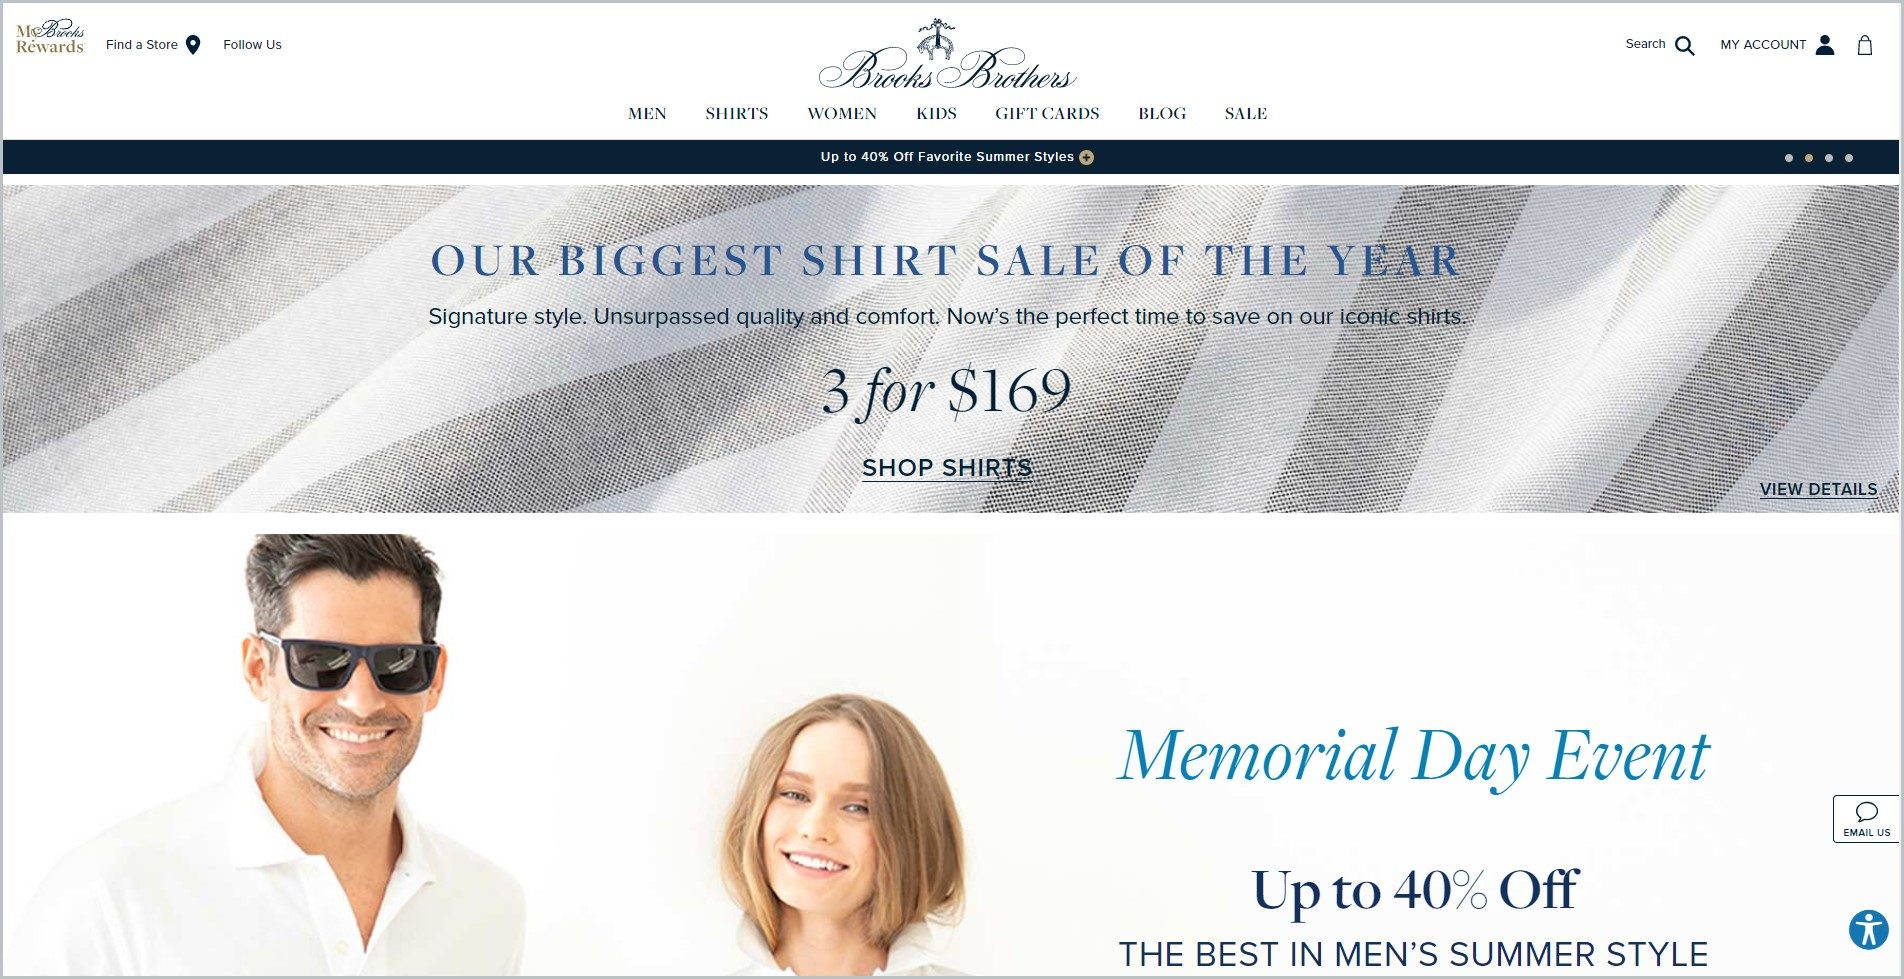 screenshot of Brooks Brothers homepage with a male and female model for main image